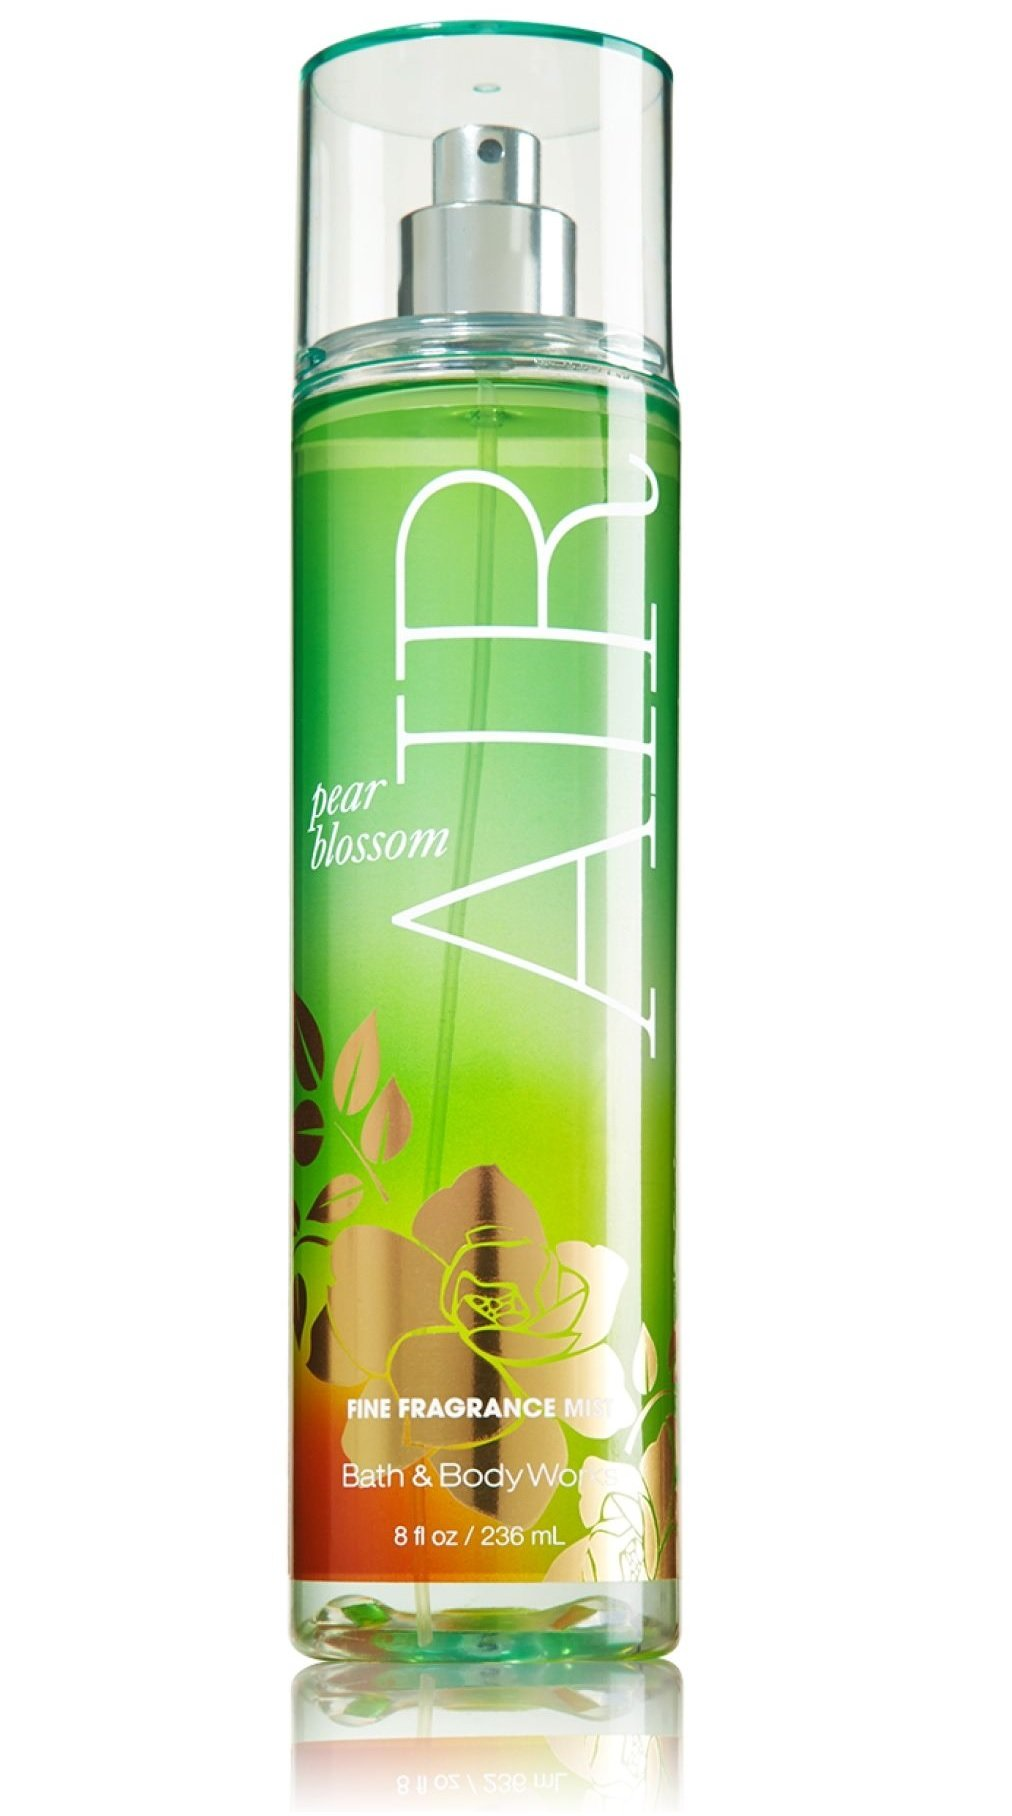 4817-Pear Blossom Air Fragance Mist 236 ml Bath and Body Works Perfumes PriceOnLine.mx